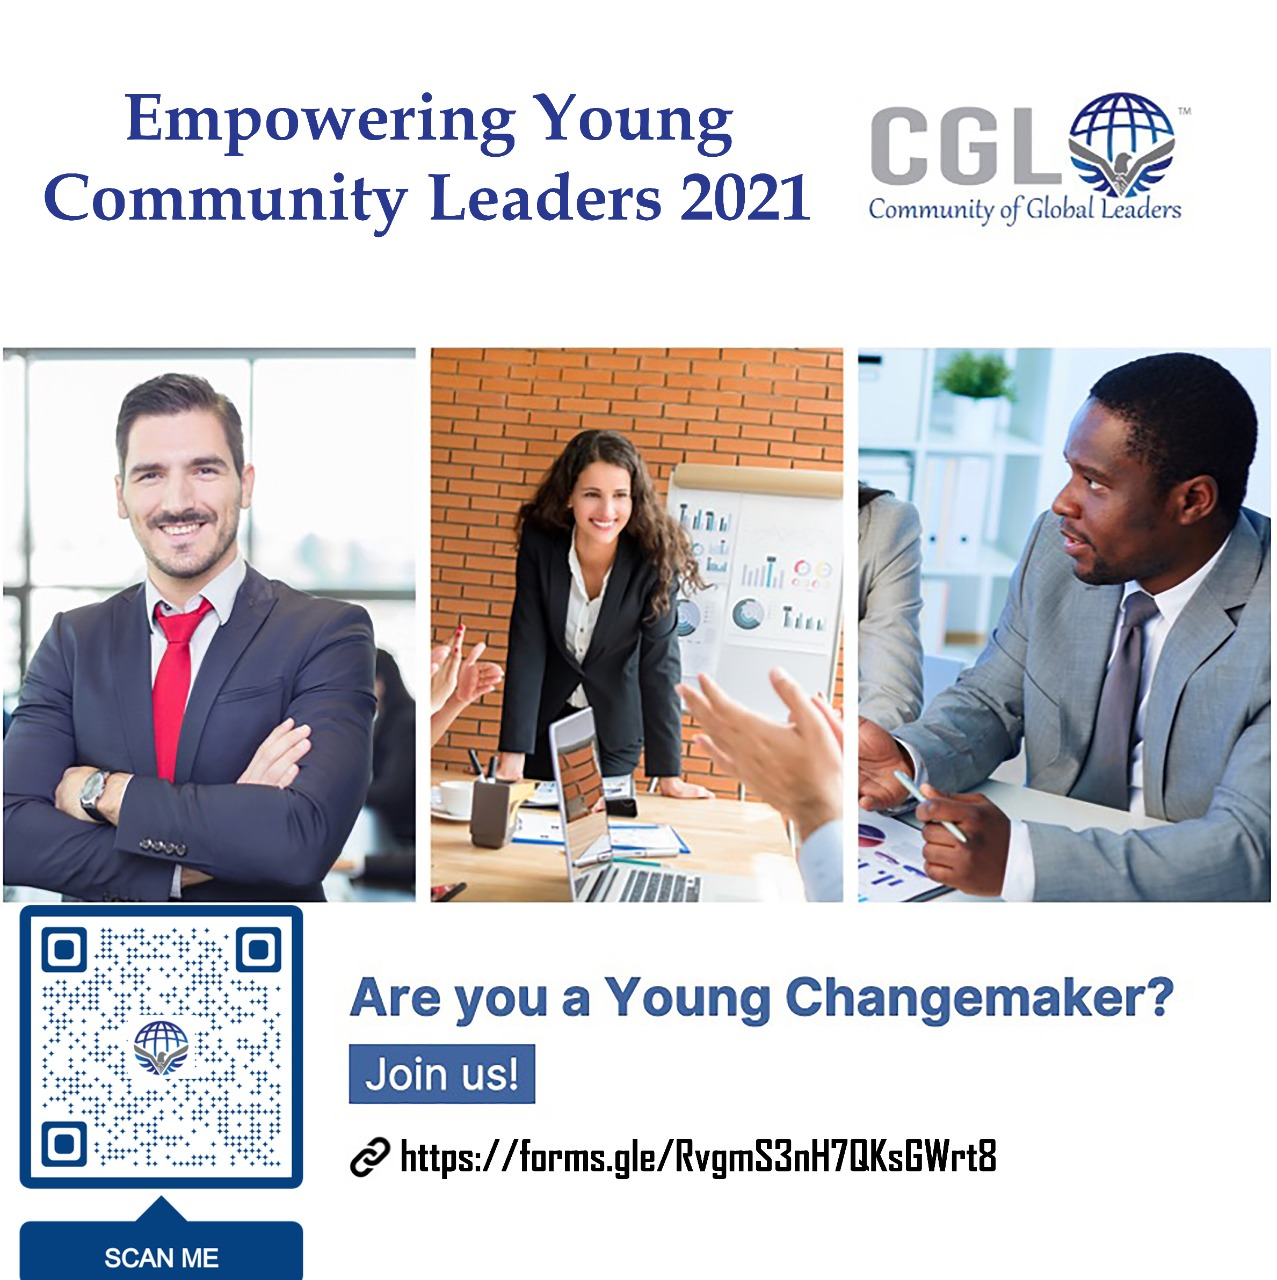 Empowering Young Community Leaders 2021